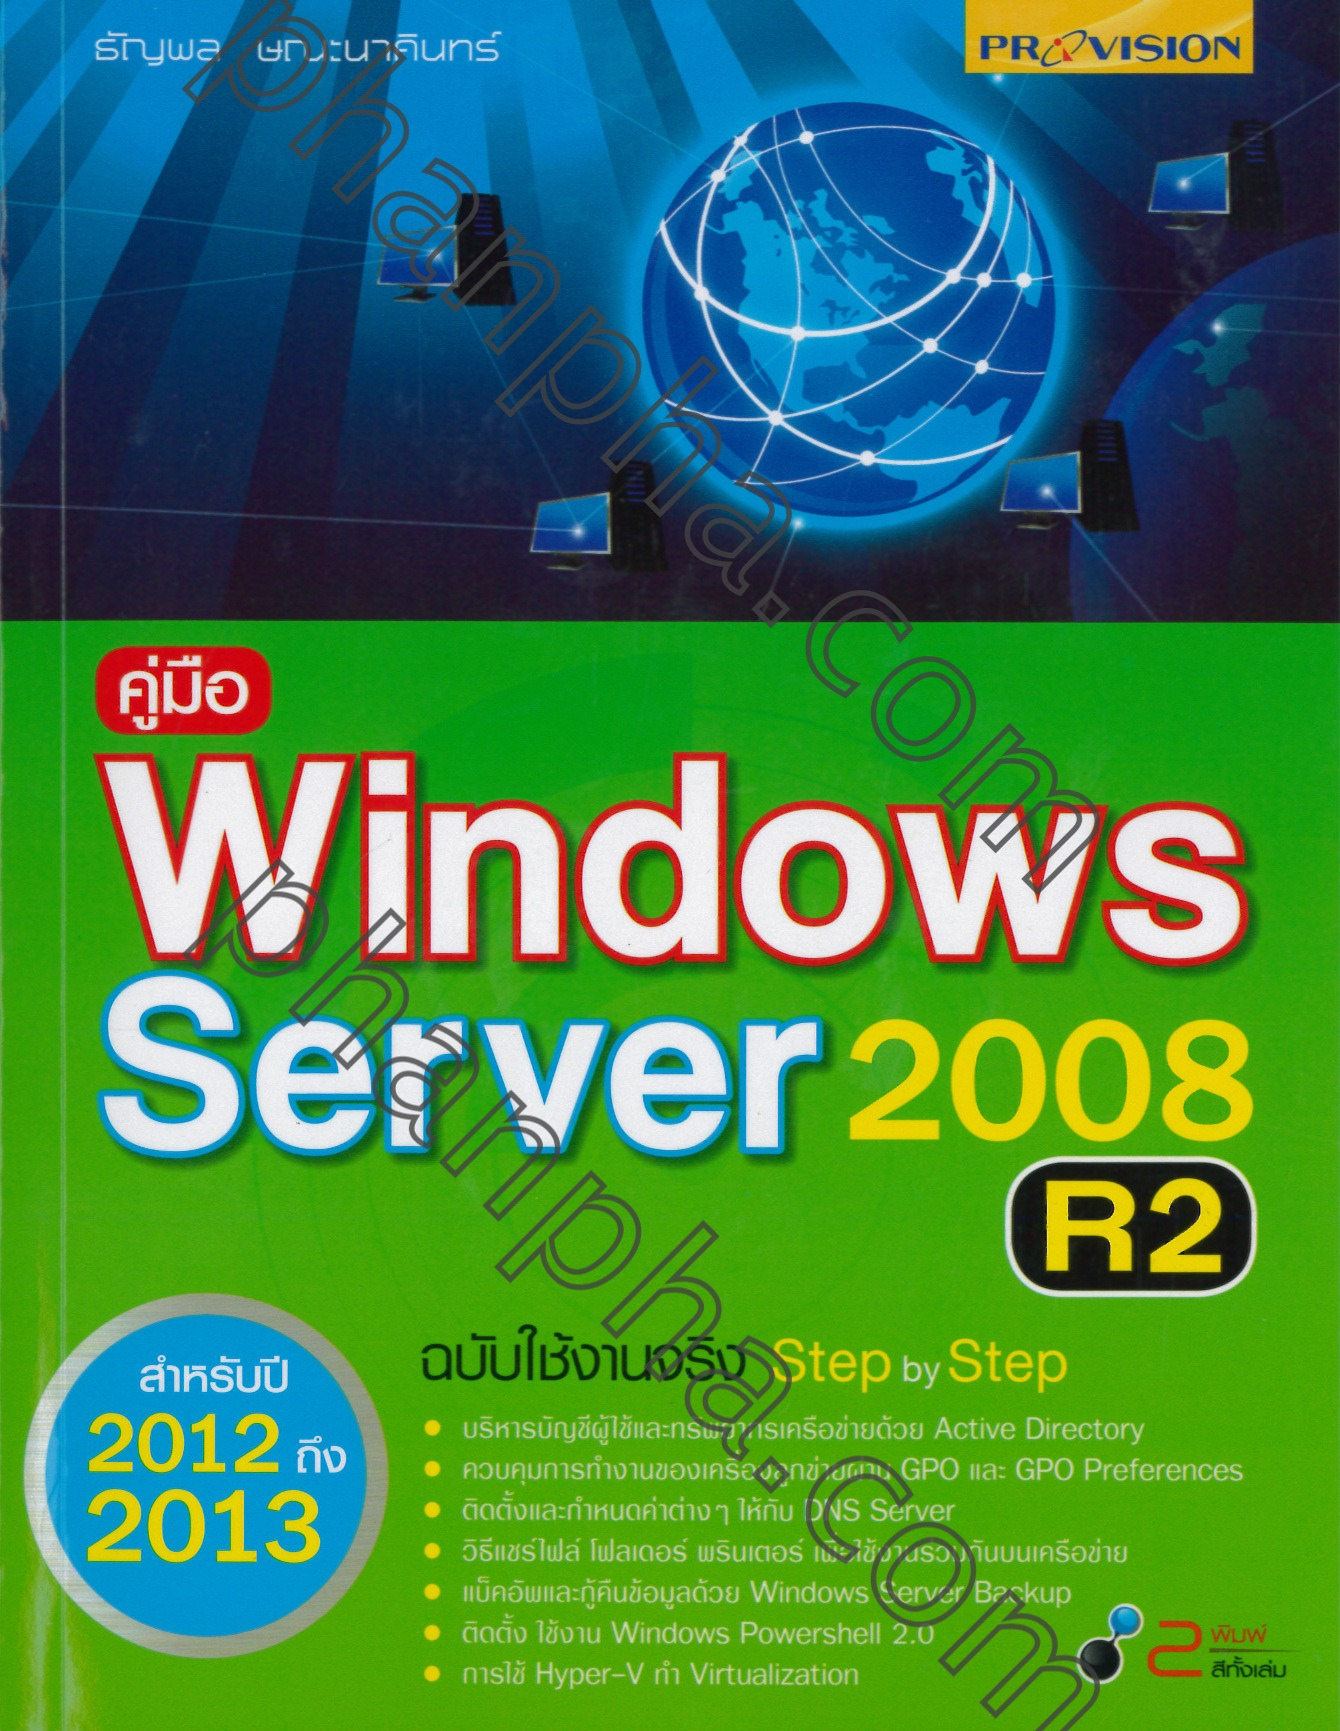 windows server 2008 r2 e book 1 pdf The user of this e-book is prohibited to reuse, retain, copy, distribute or republish  windows server 2012 codenamed windows server 8 is the most recent version of the  select the partition where the windows server 2012 r2 will be installed in our case we have one partition once all this is done, then click on next.